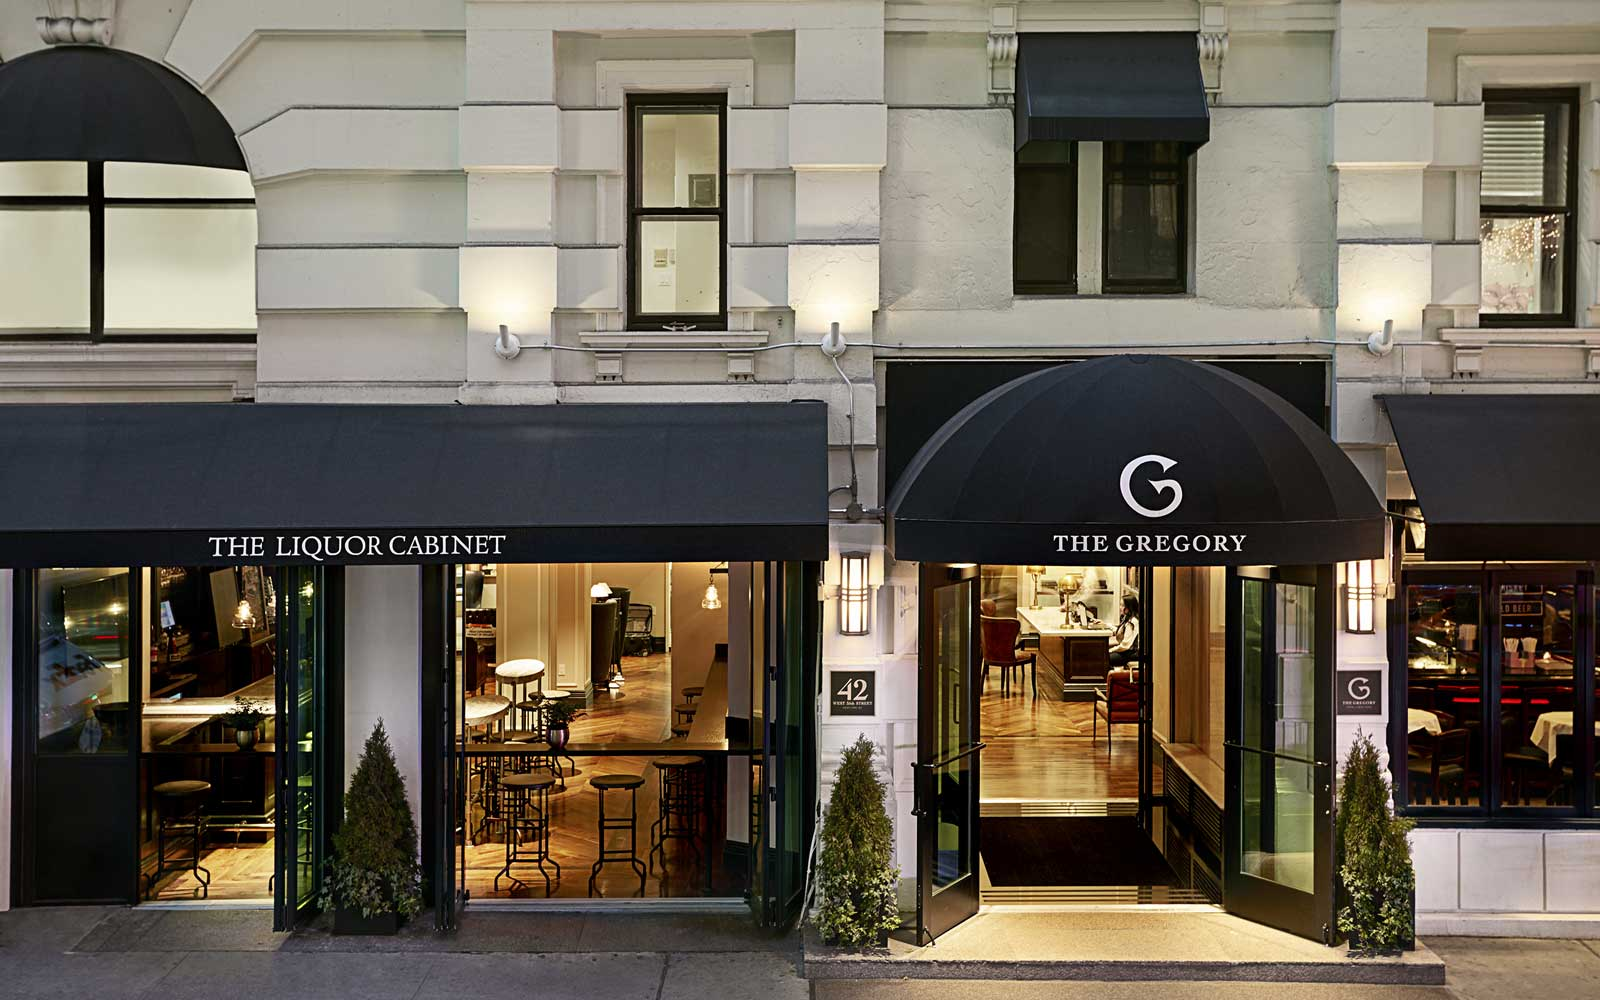 Exterior of The Gregory Hotel in New York